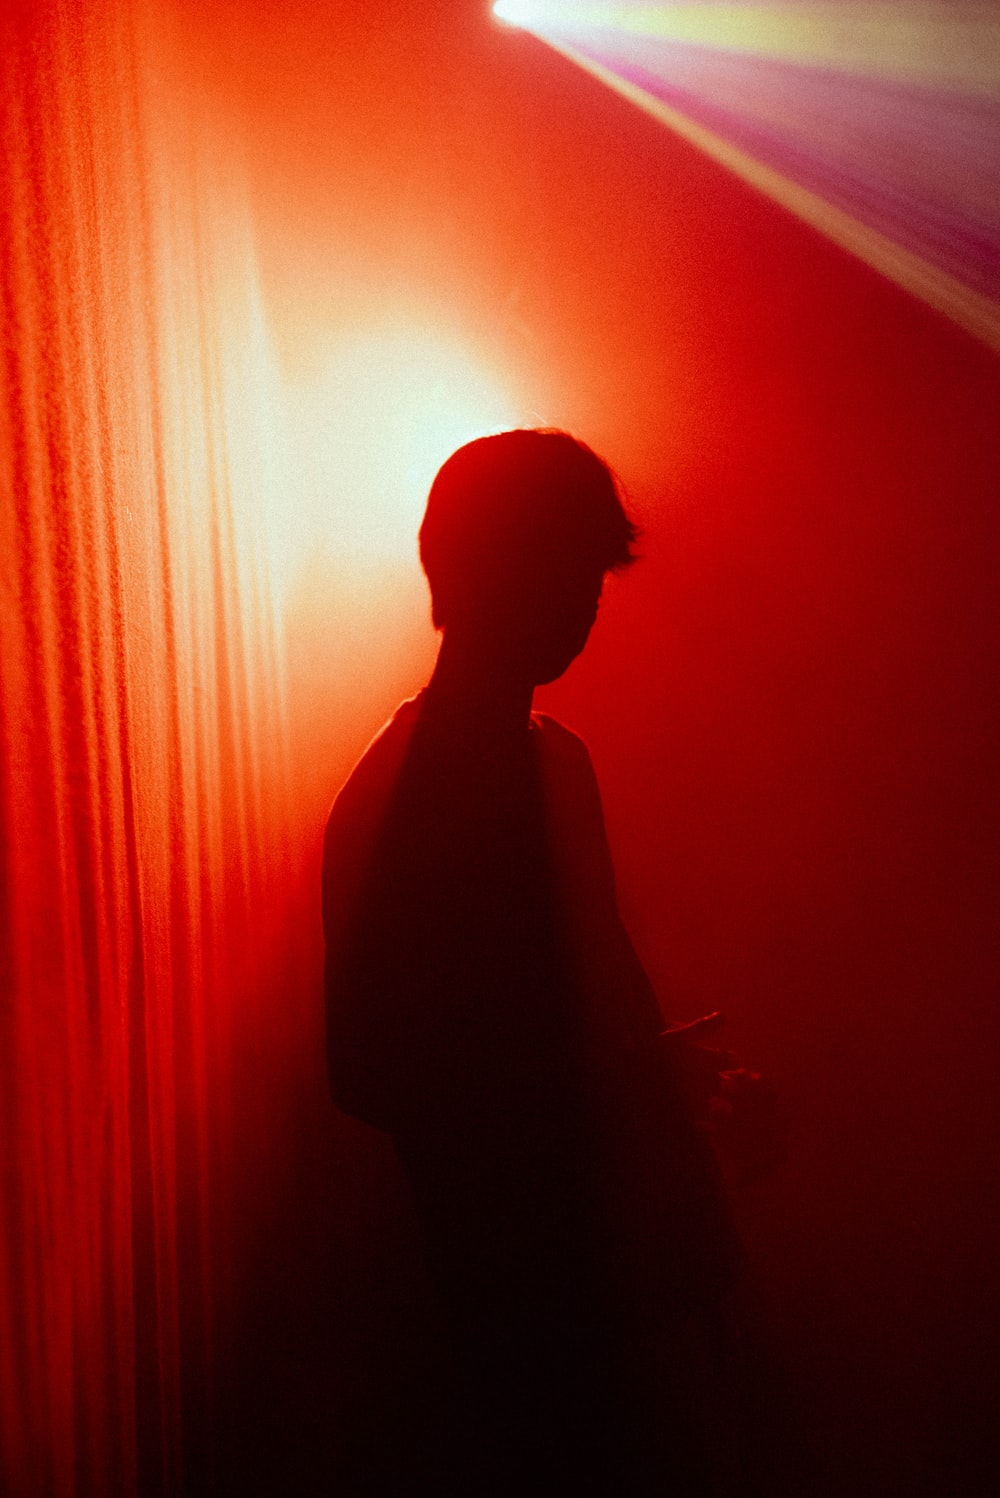 silhouette of man standing near red curtain